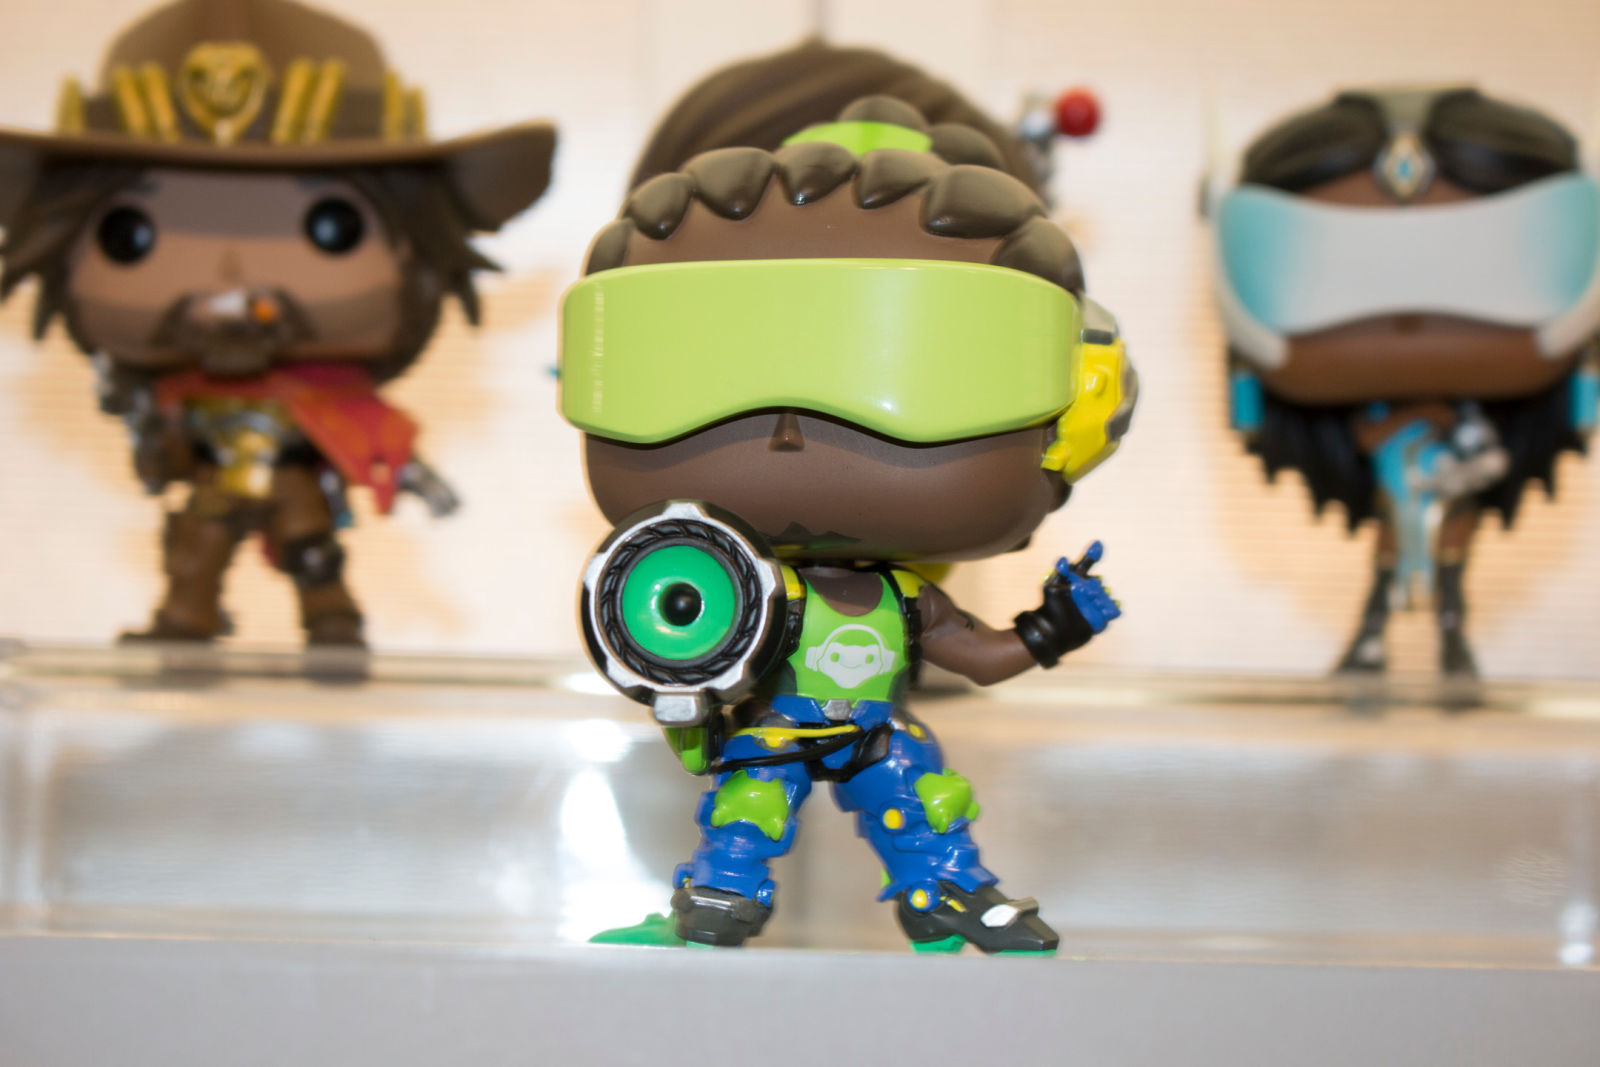 Toy Fair 2017: As melhores fotos do evento - Blog Farofeiros - Funko